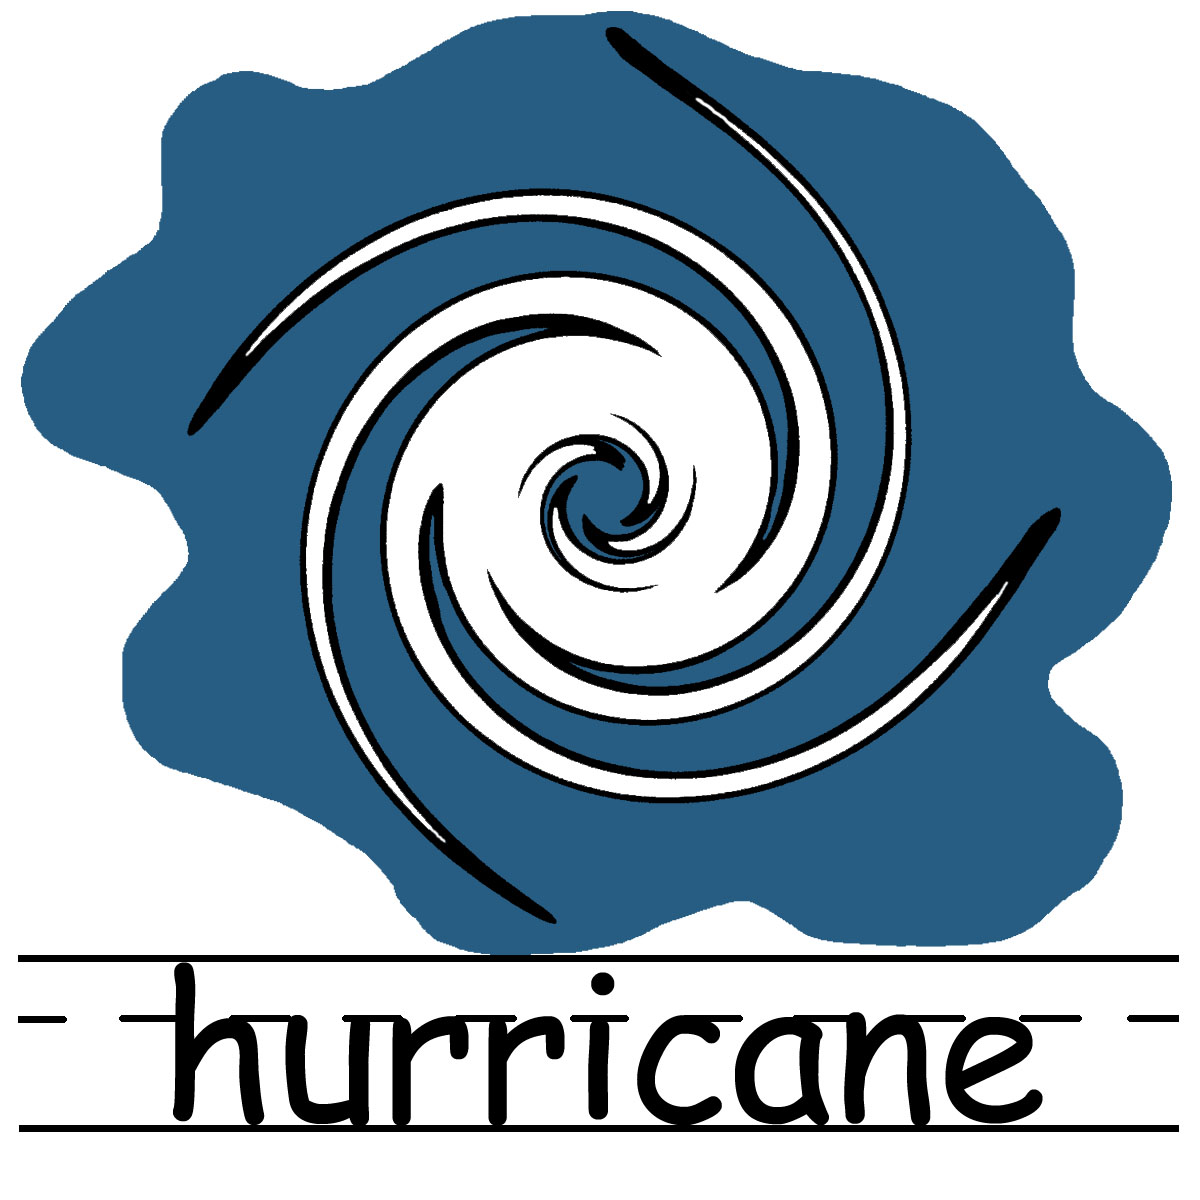 Huracan clipart image free library Free Hurricane Cliparts, Download Free Clip Art, Free Clip Art on ... image free library